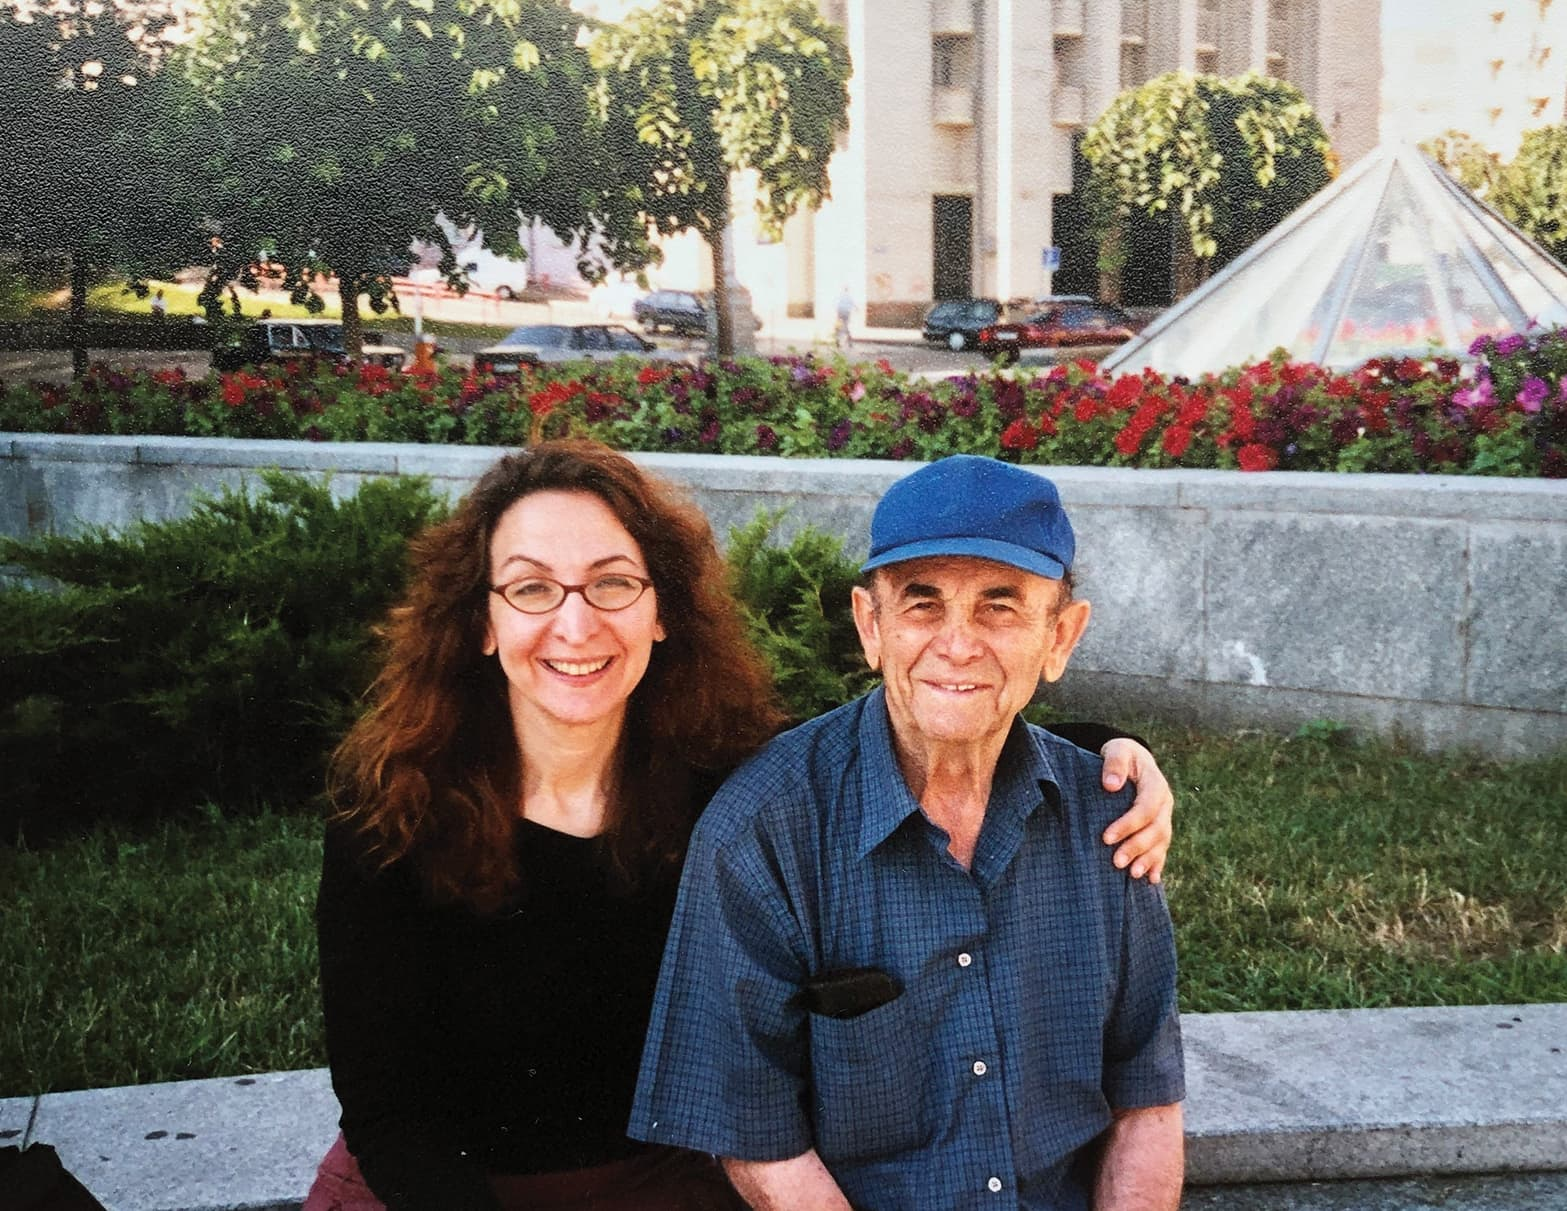 """Heidi Bratt with her father, Michael Bratt, on a trip in 2006 to Rovno, Ukraine, to visit his hometown. """"I could channel my parents' strength,"""" she says."""